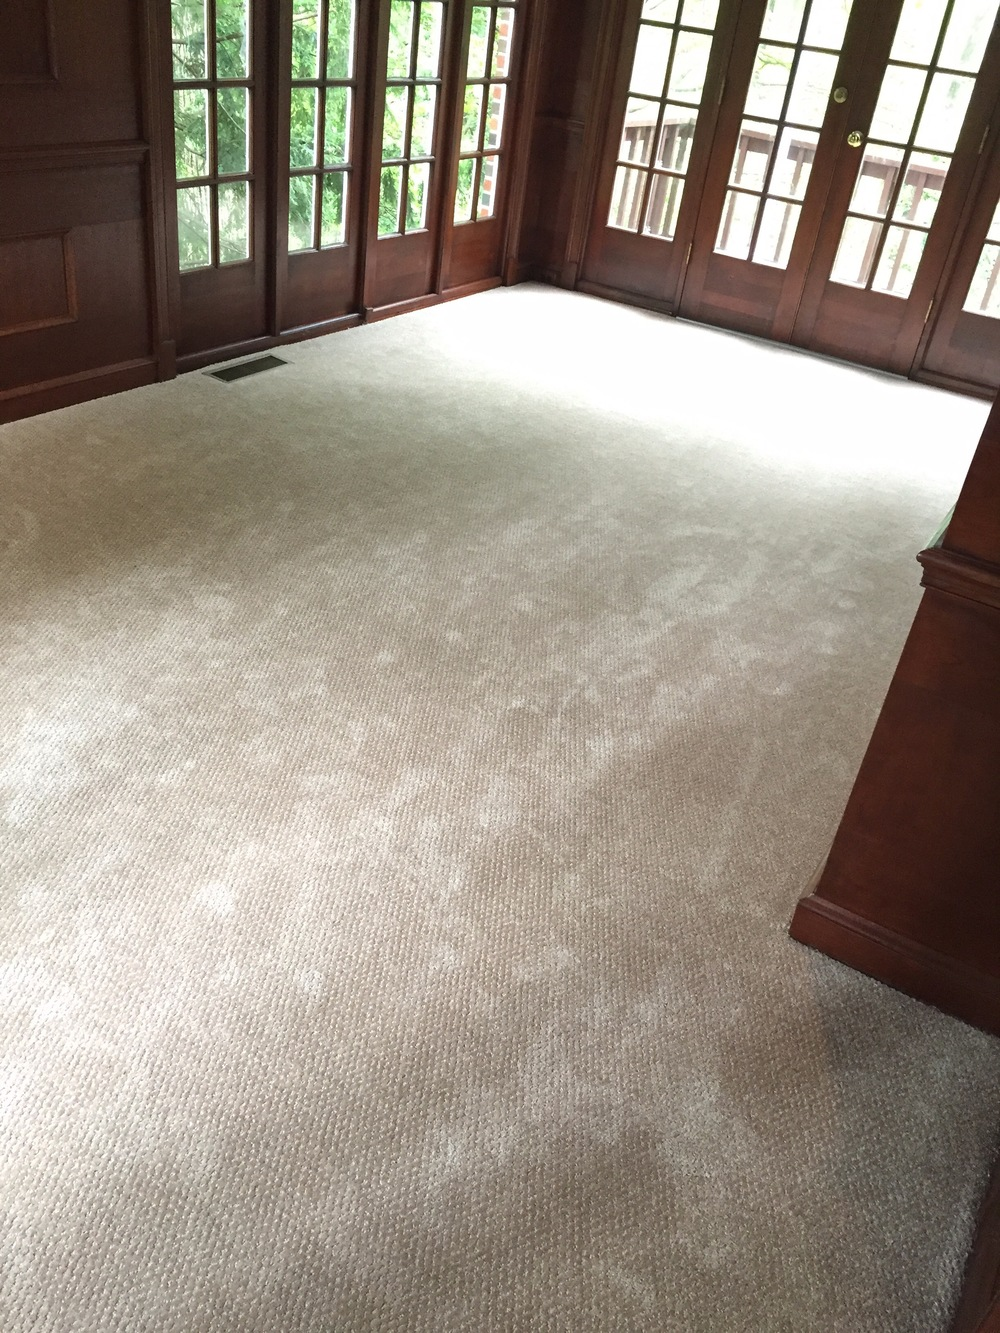 1 - Carpet in House.jpg